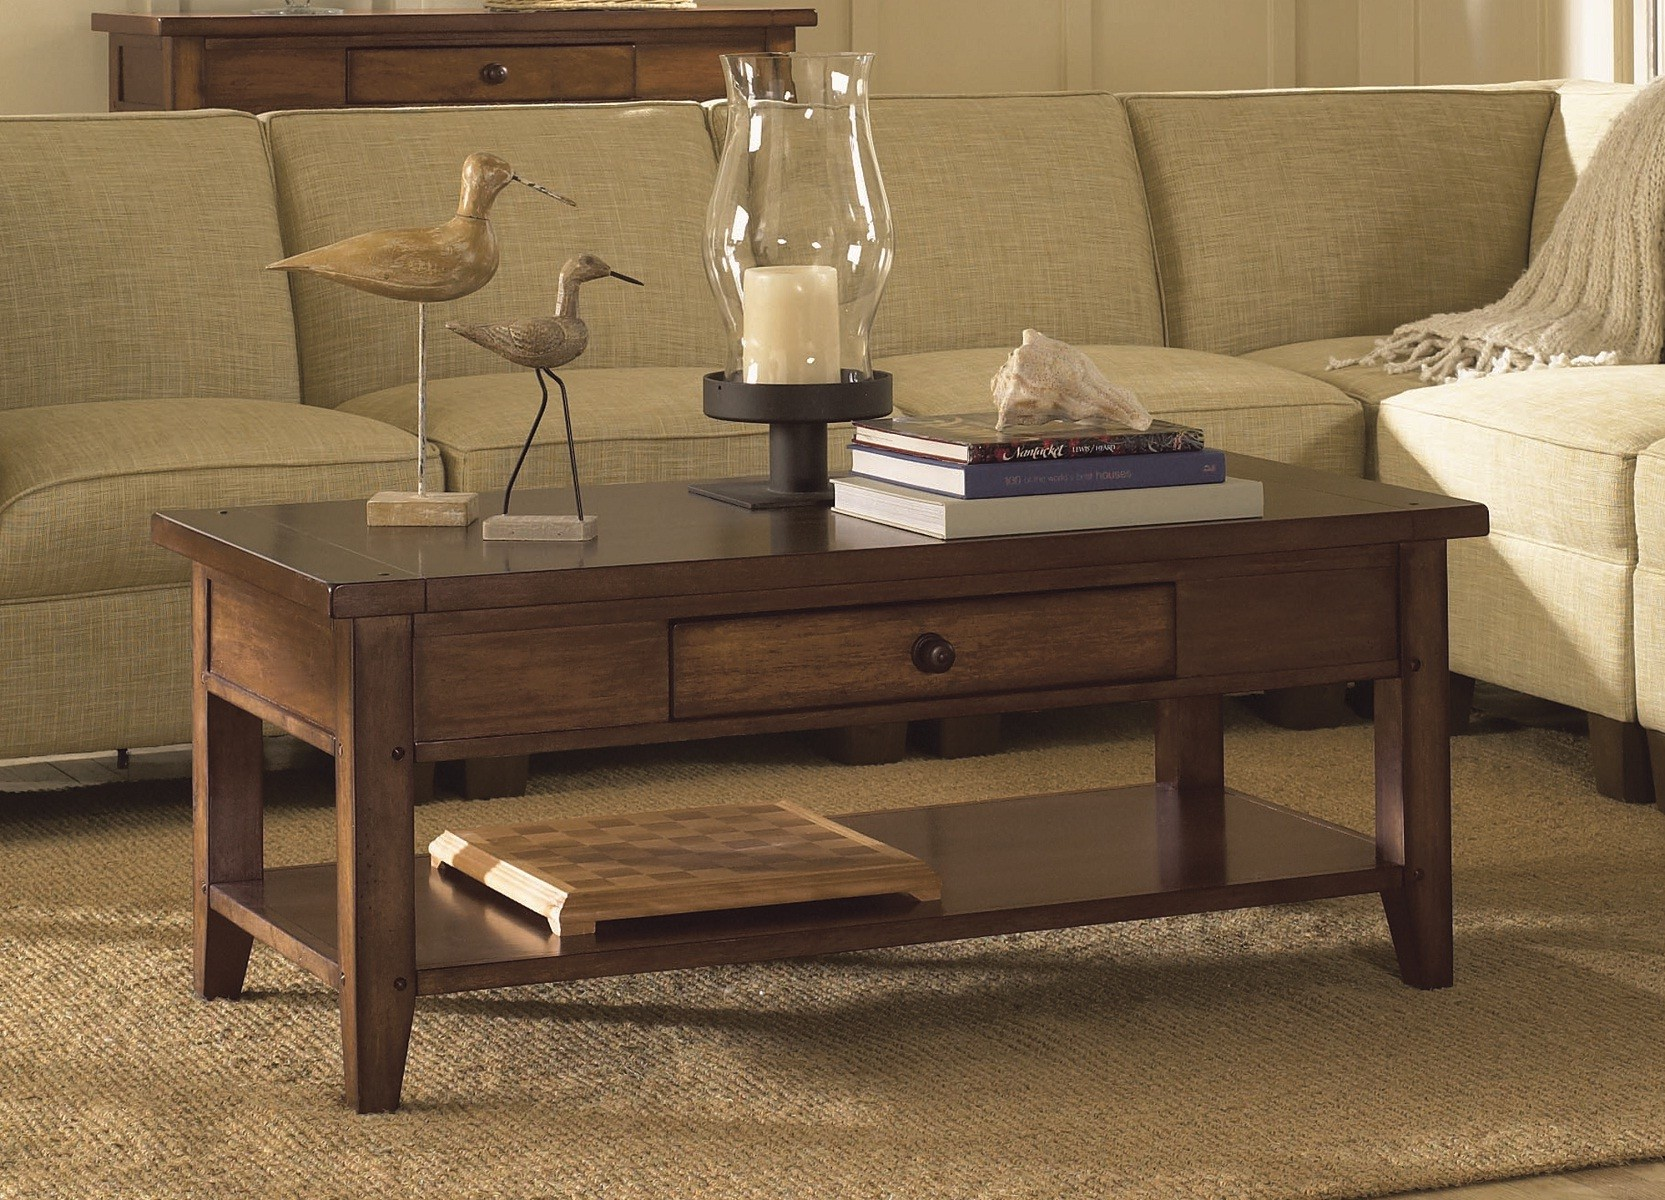 Aspen Home Coffee Table.Aspenhome Cross Country Cocktail Table W Shelf In Saddle Brown Imr 910